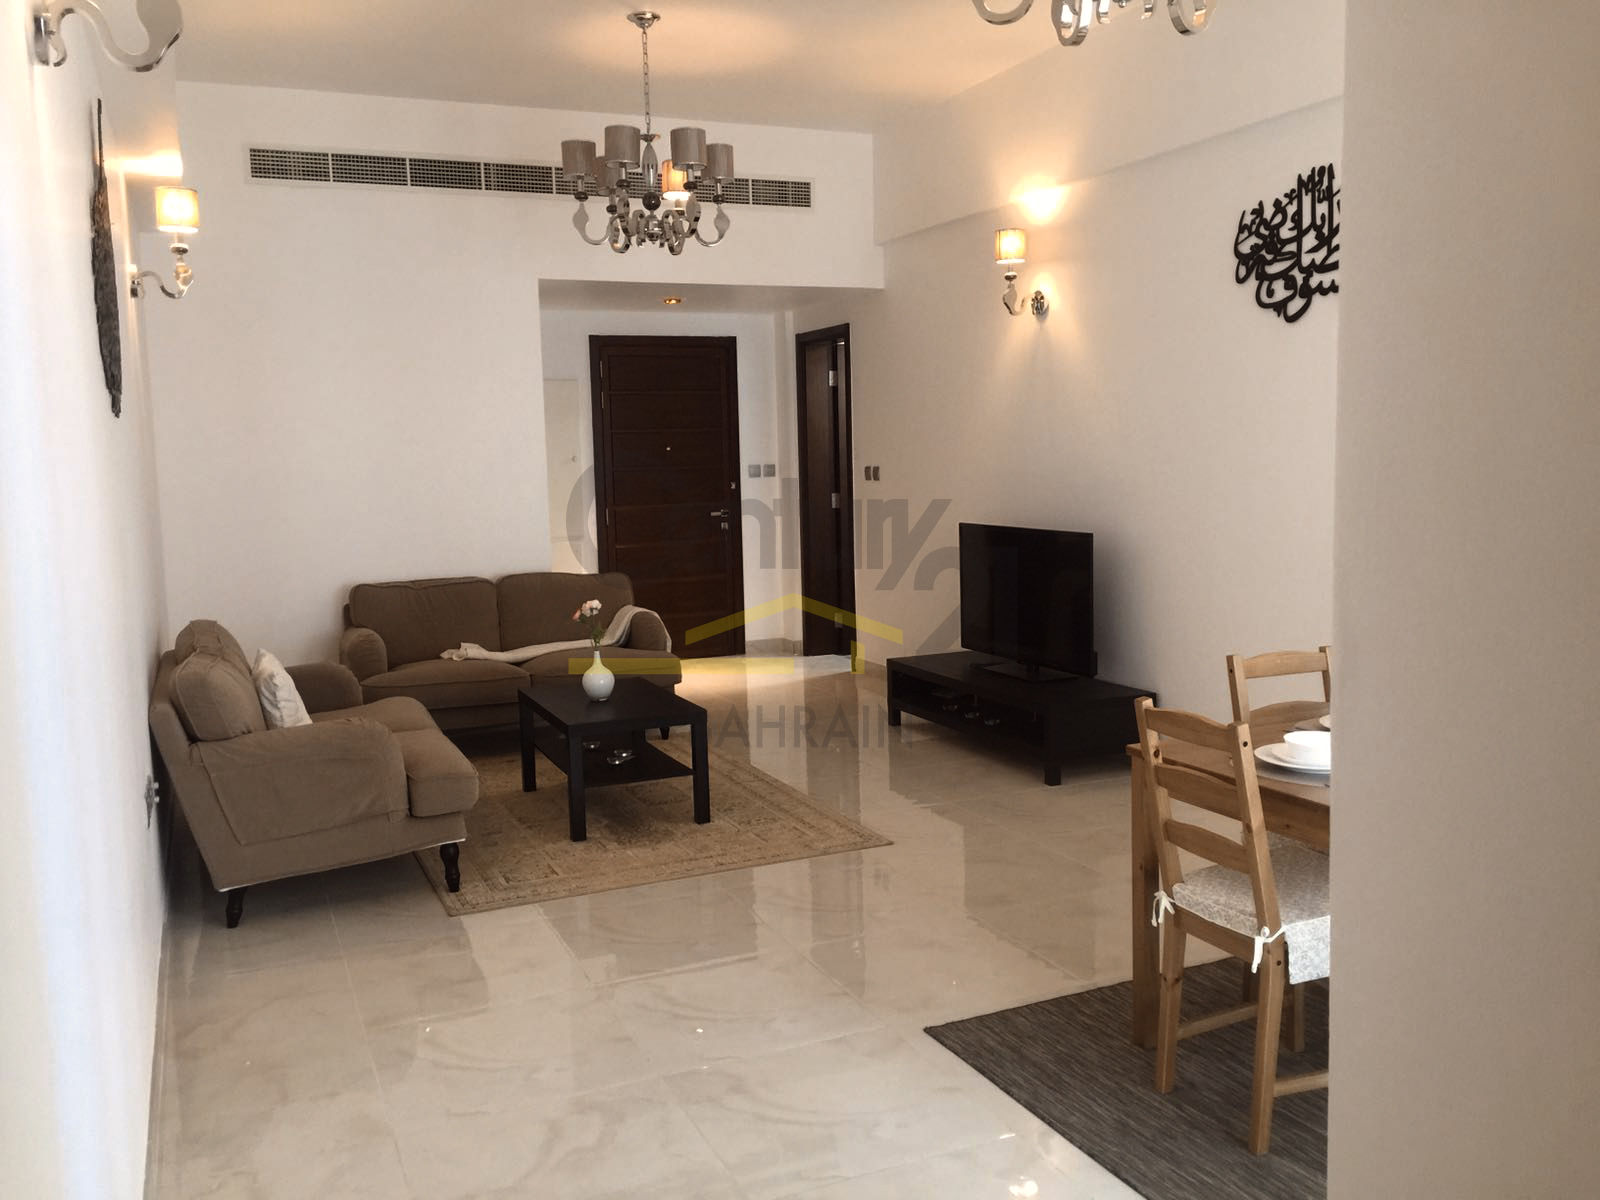 Brand New Fully Furnished 1 Bedroom Apartment In Juffair For Bd 400 Inclusive Century 21